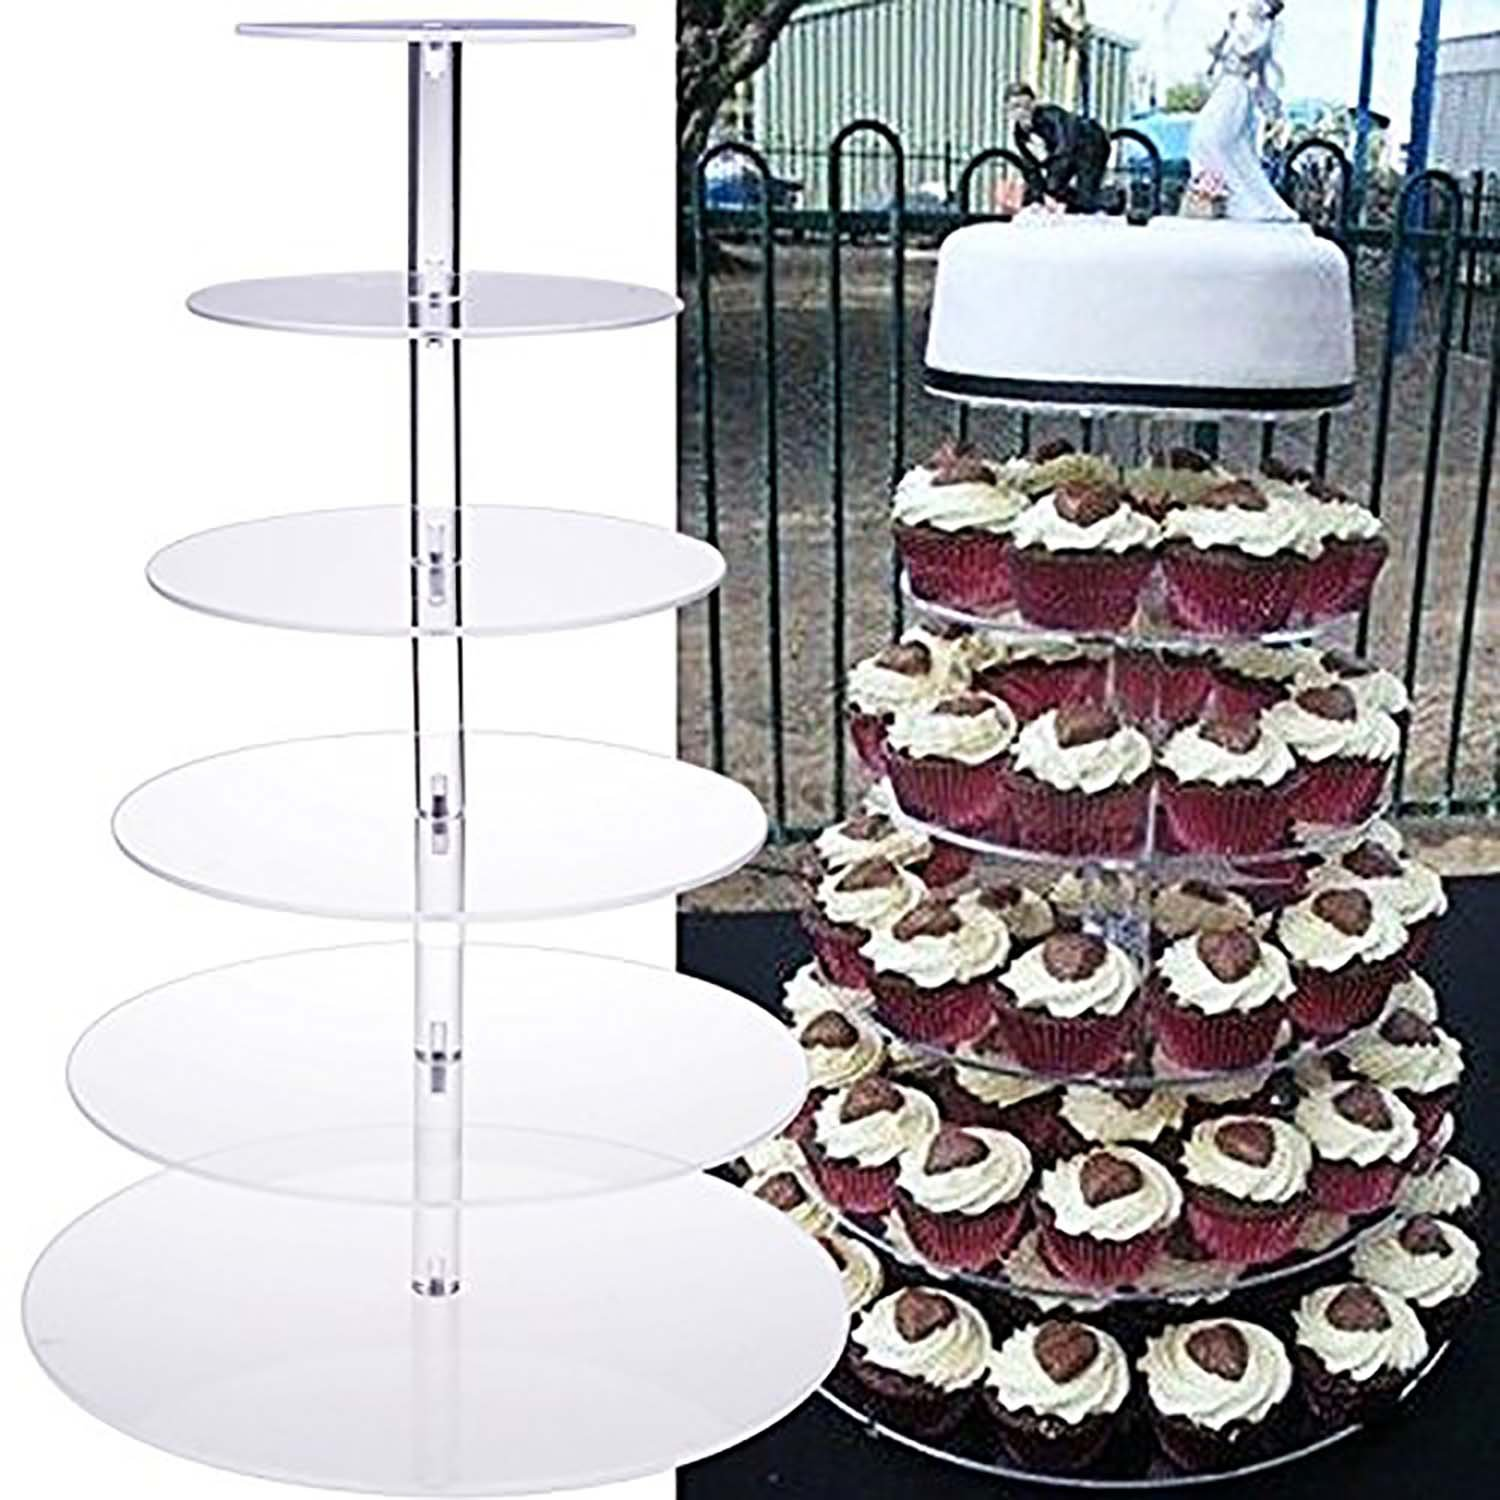 Acazon 5/6/7 Tier Round Clear Acrylic Cupcake Stand Wedding Display Cake Dessert Tower for Birthday Wedding Party [US STOCK] (6 Tier)